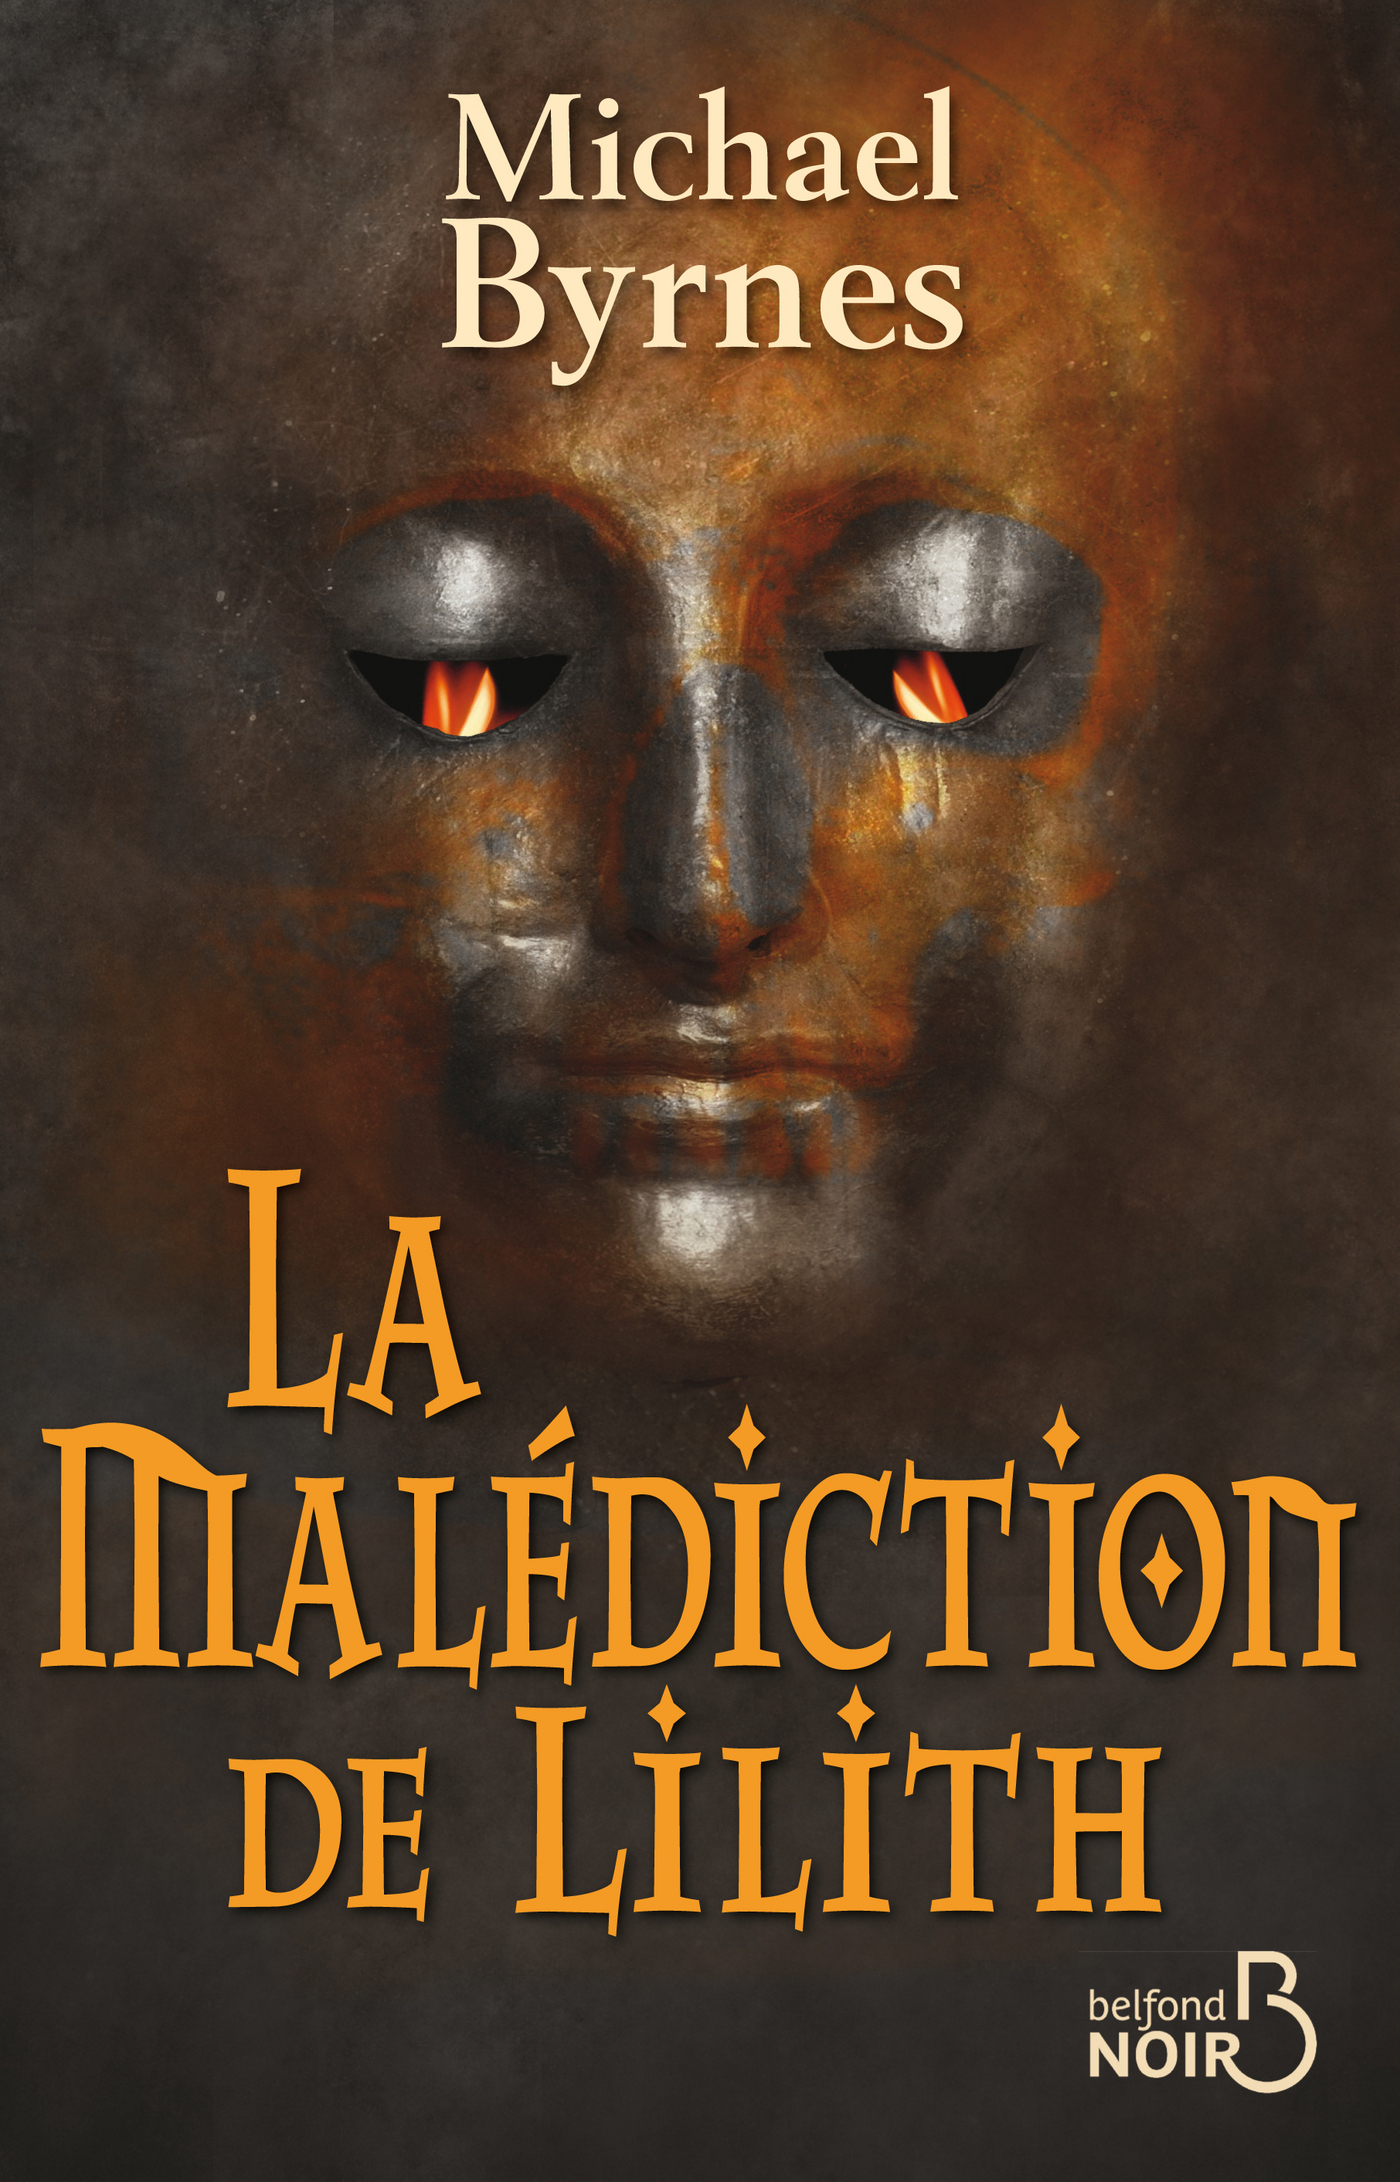 La malédiction de Lilith